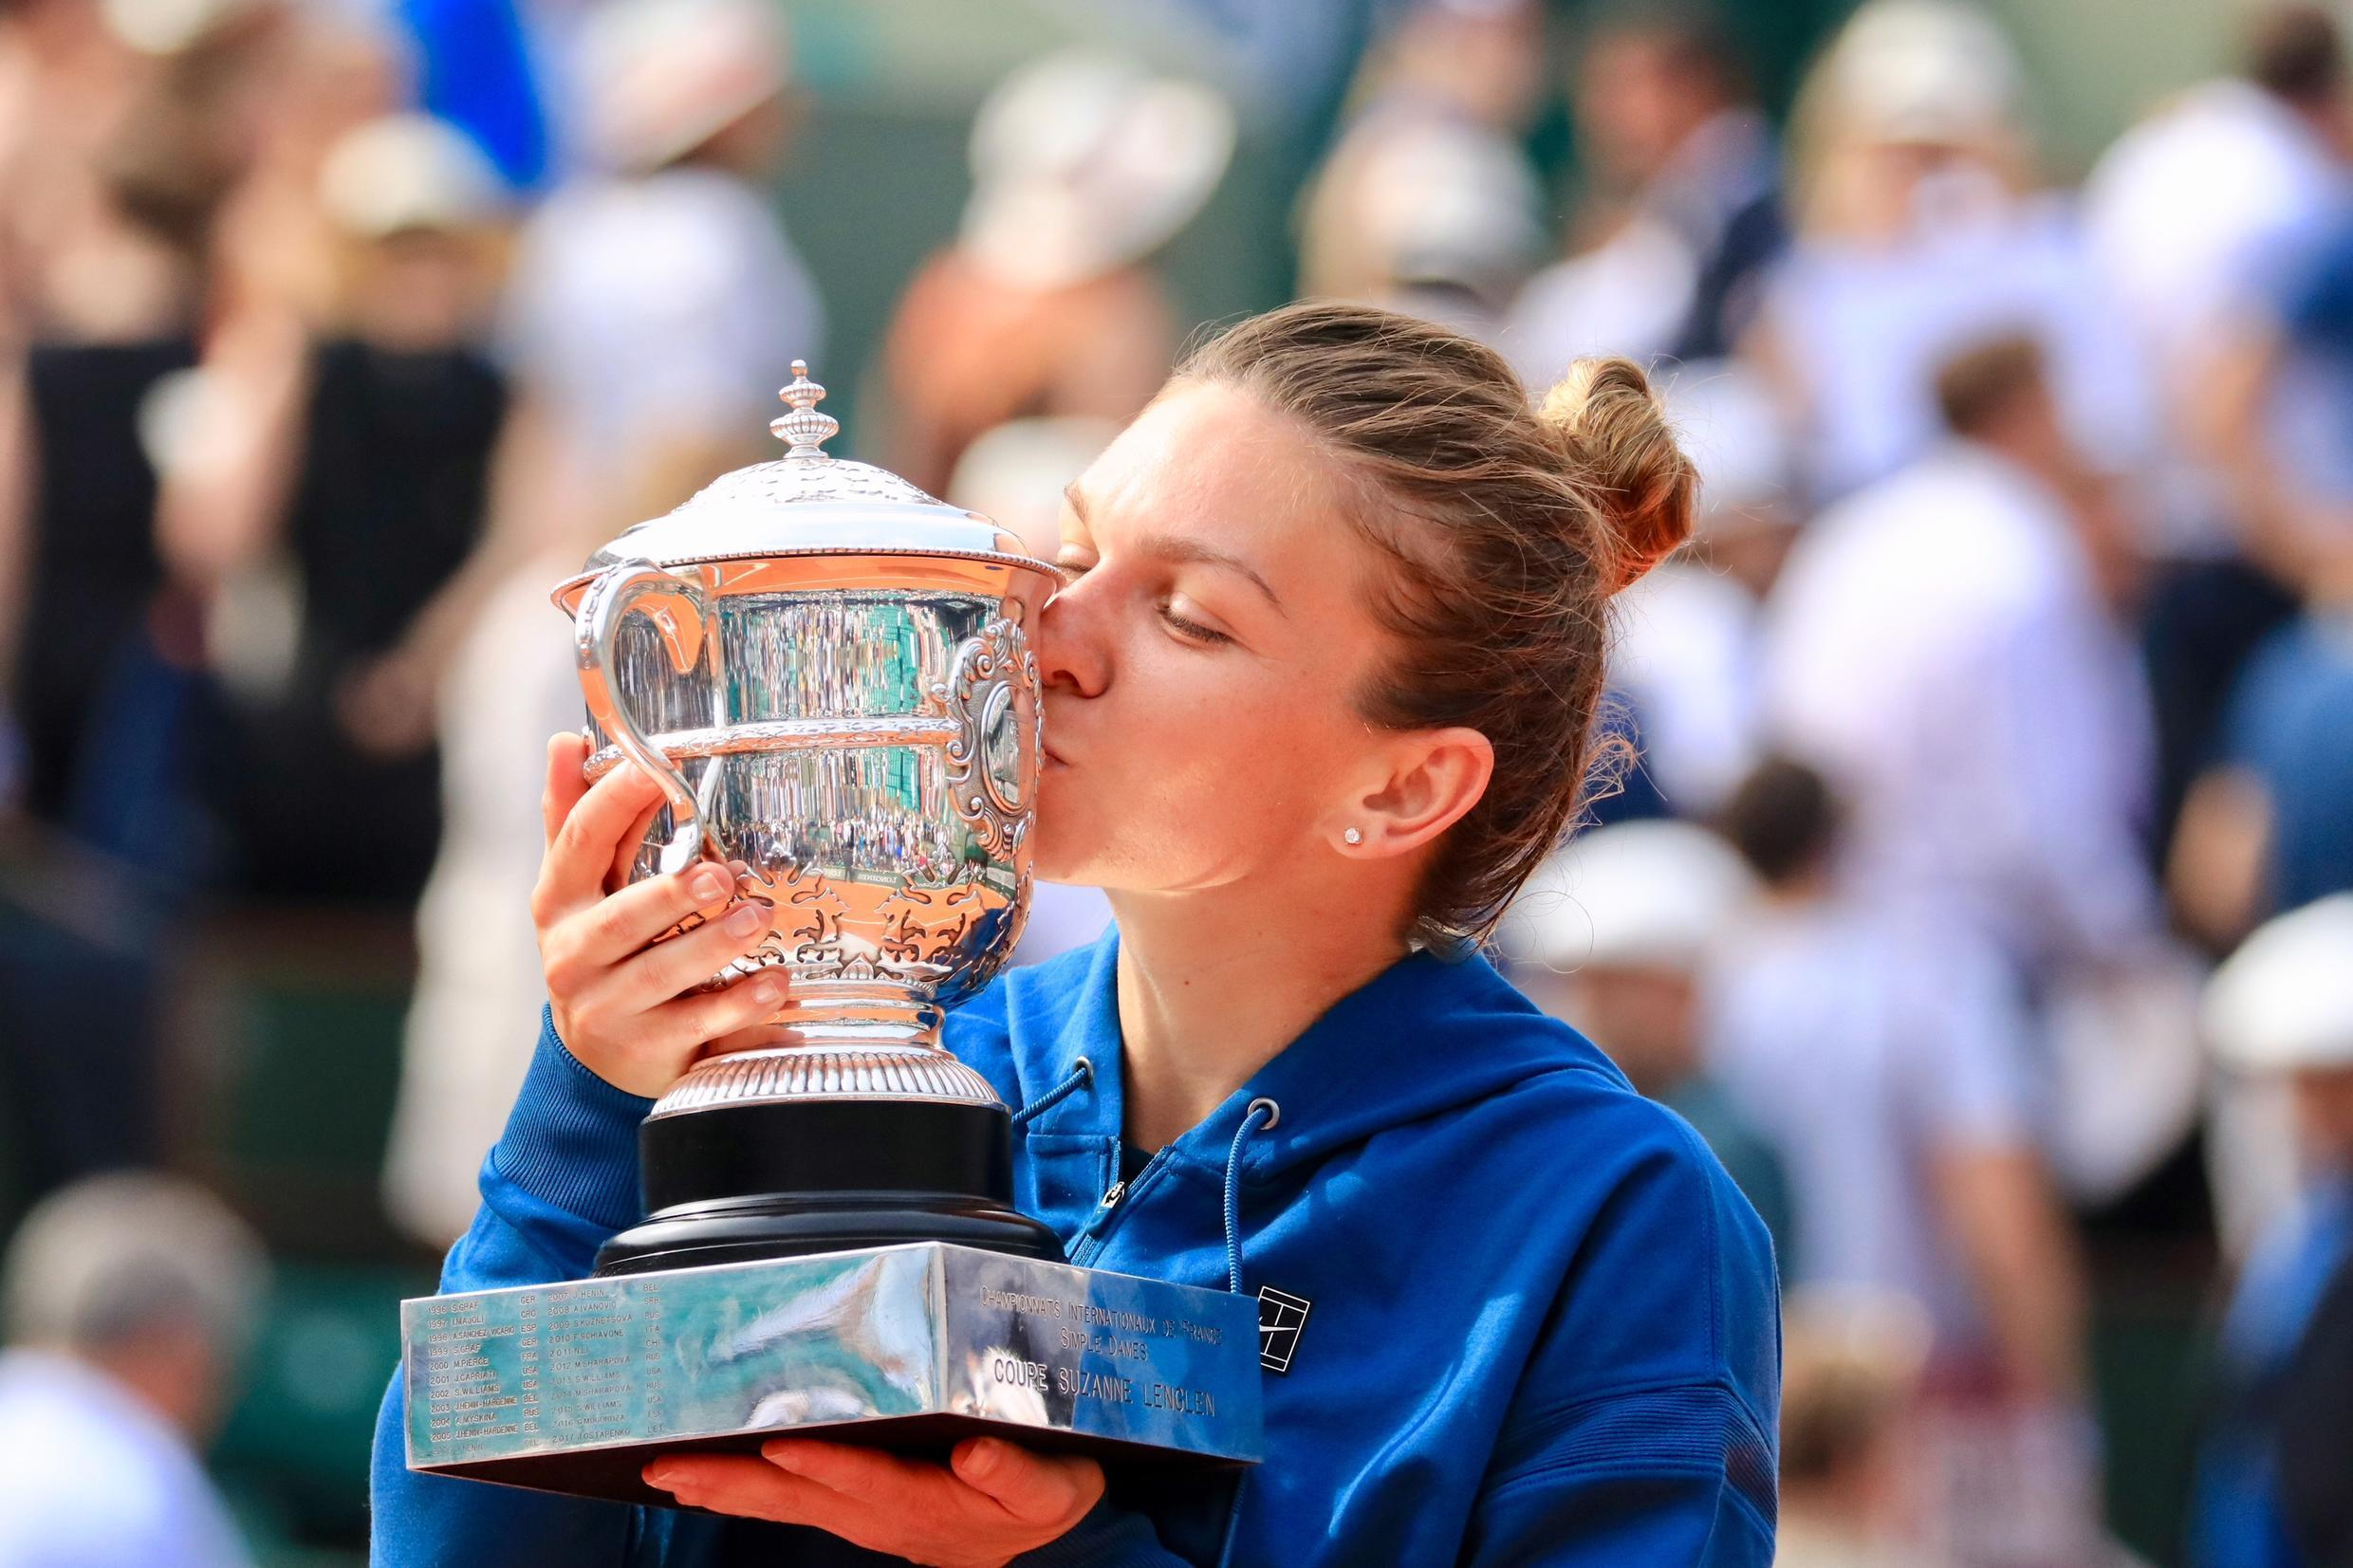 Simona Halep won her first Grand Slam trophy at the French Open in 2018.